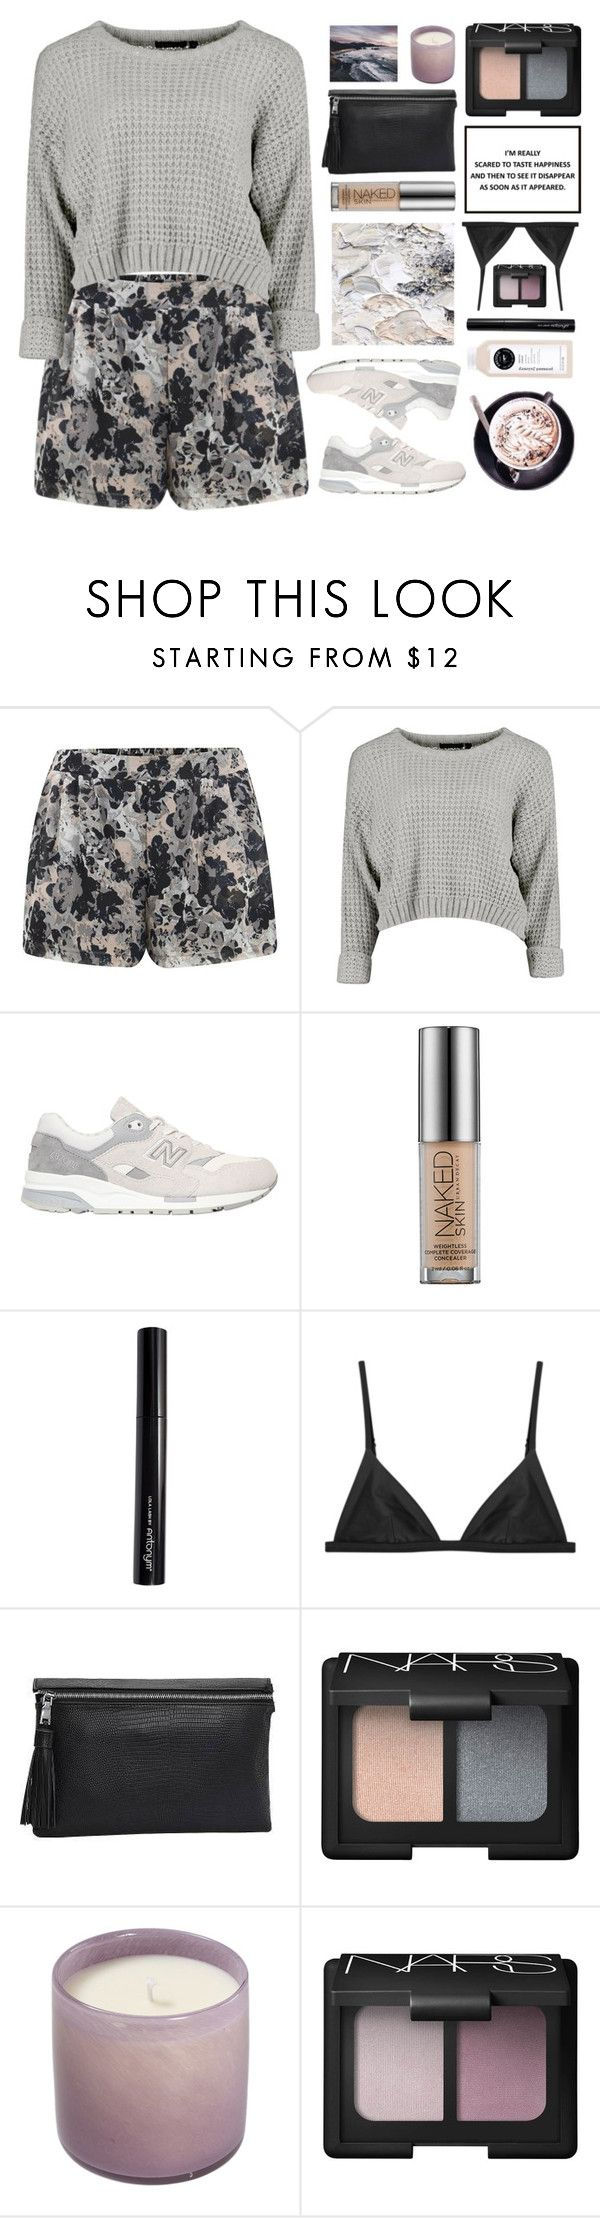 """Untitled #2573"" by tacoxcat ❤ liked on Polyvore featuring ONLY, New Balance, Urban Decay, Antonym, NARS Cosmetics and Music of the Spheres"